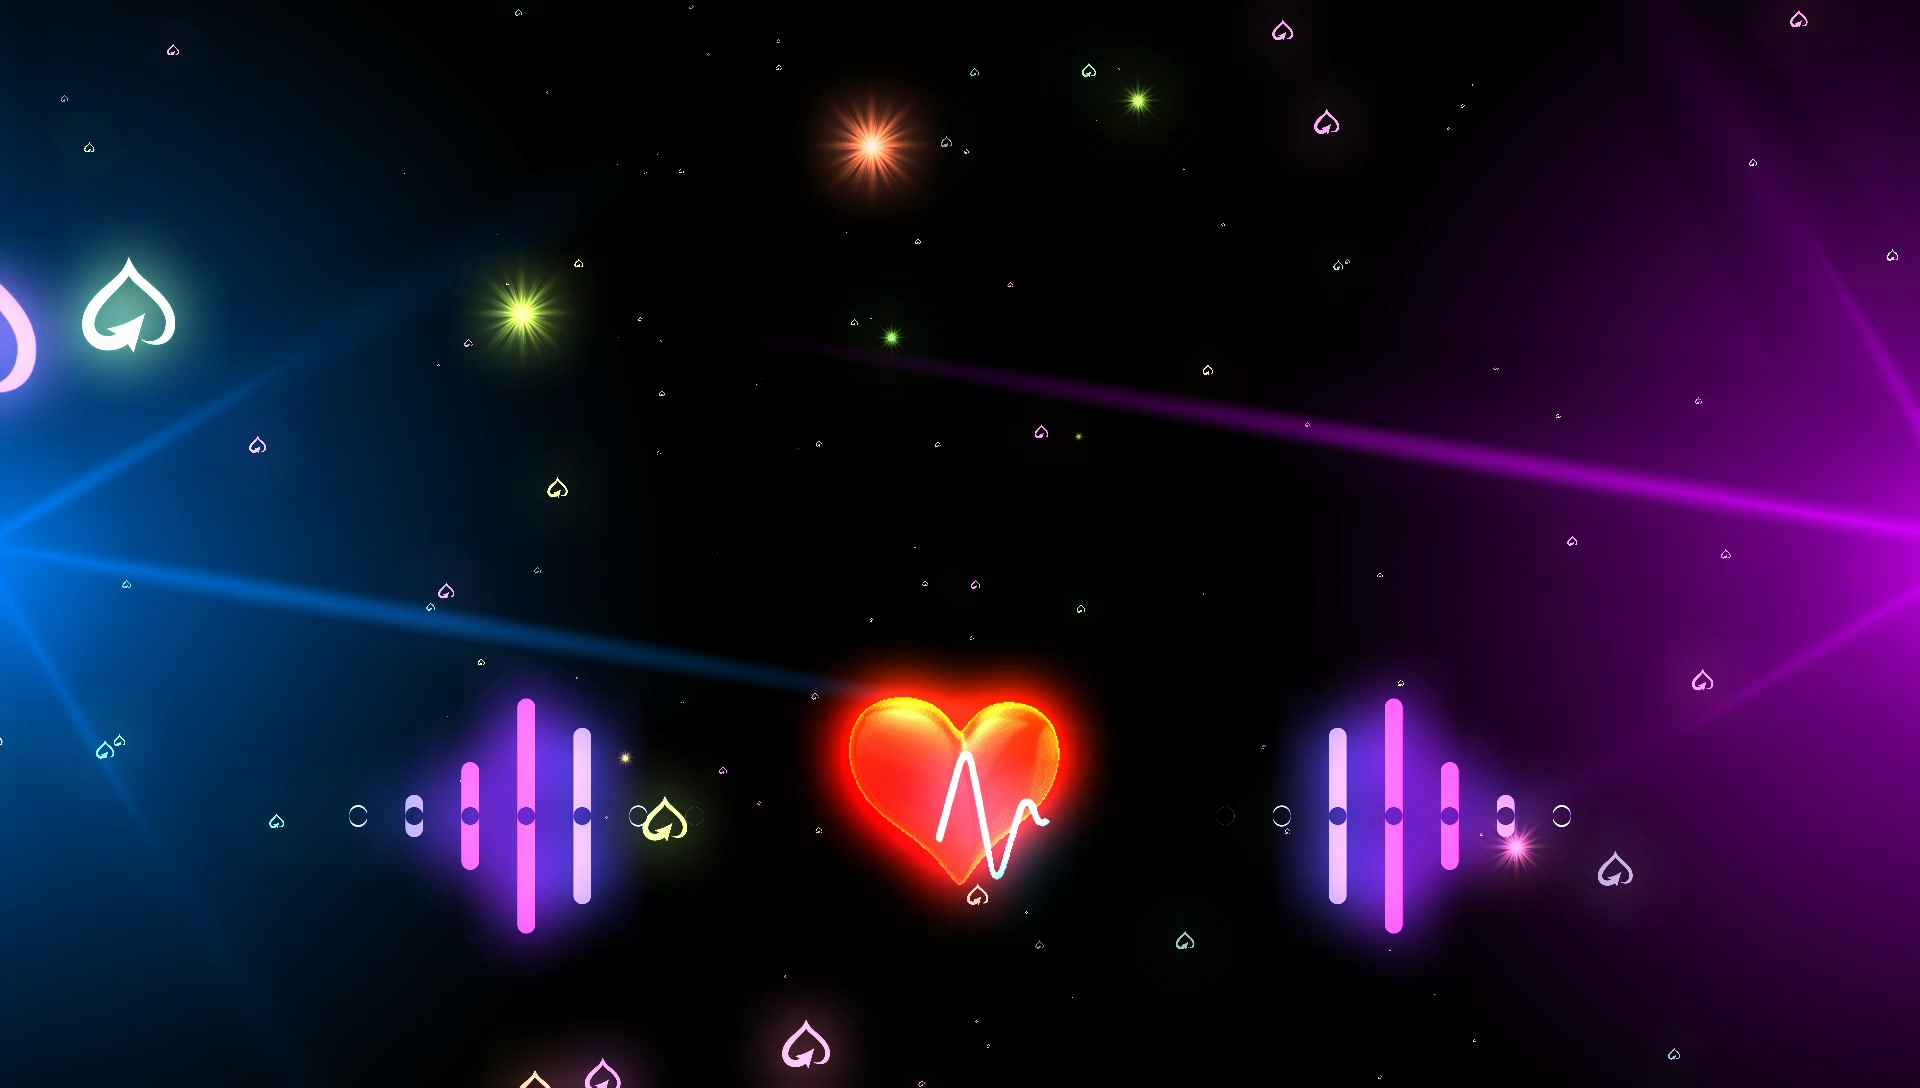 Star Cool Light With Heart Pump Background Video